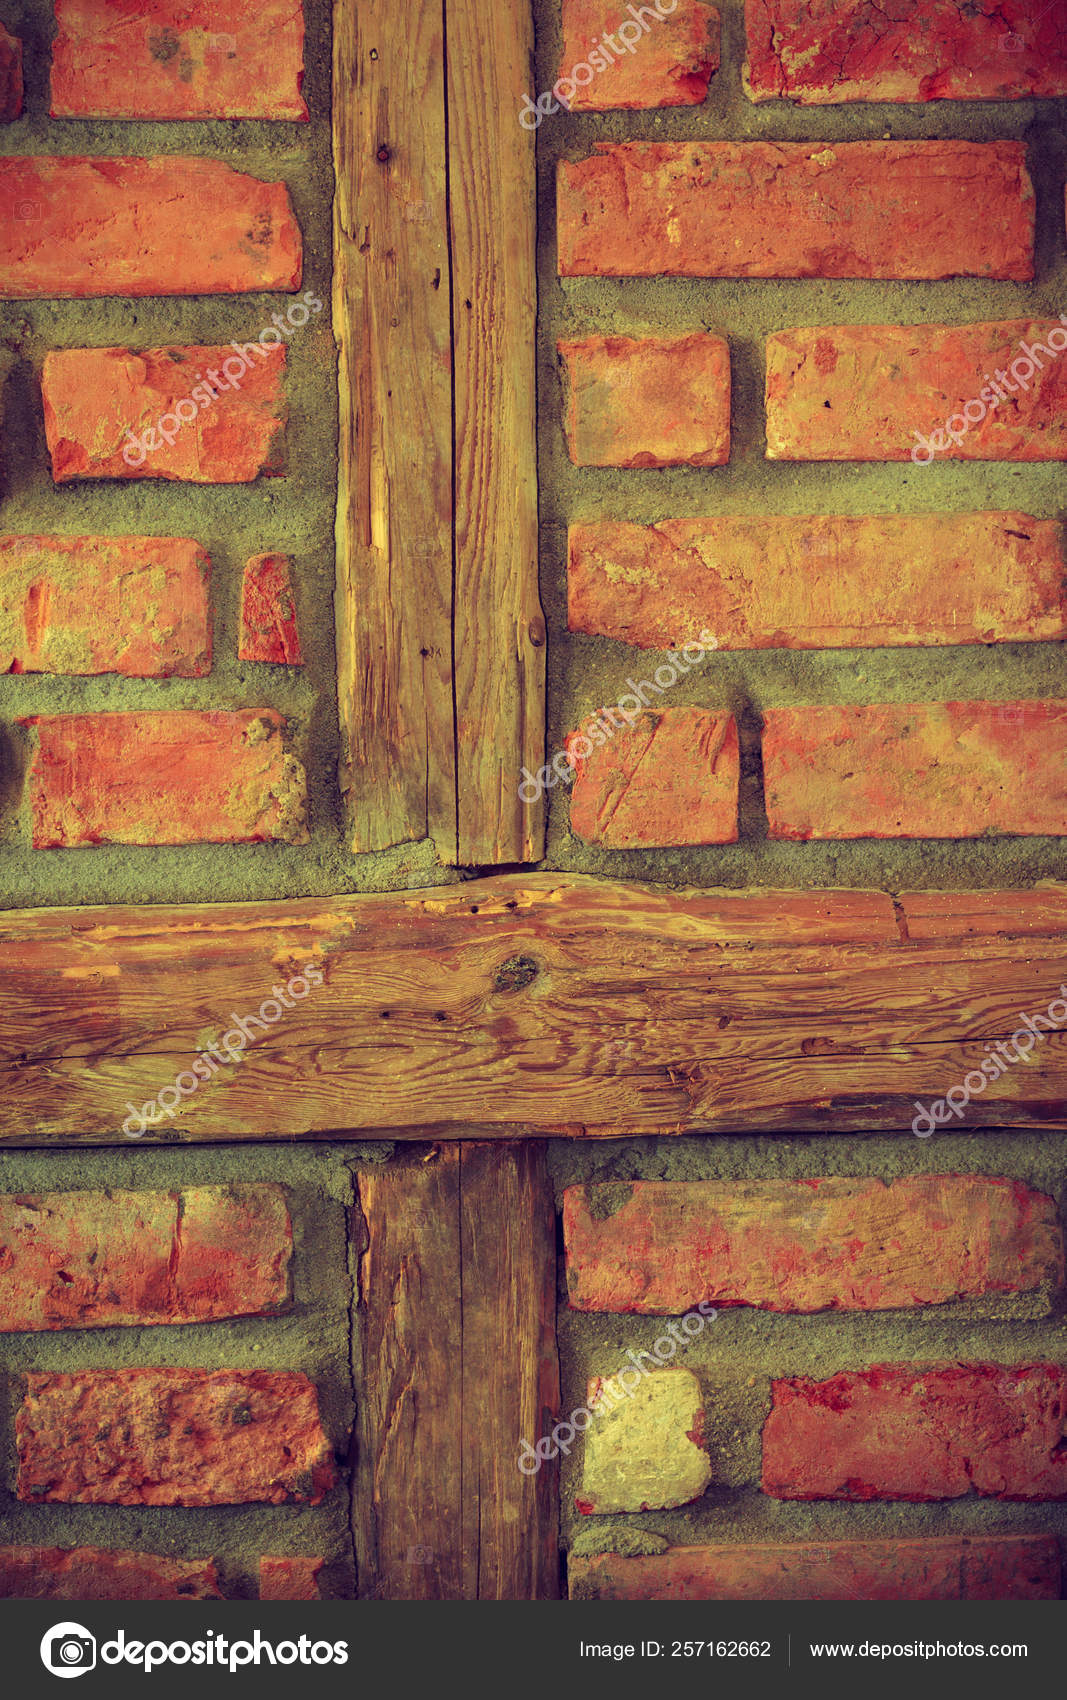 Red Brick Wall With Wooden Pieces Stock Photo Image By C Voyagerix 257162662